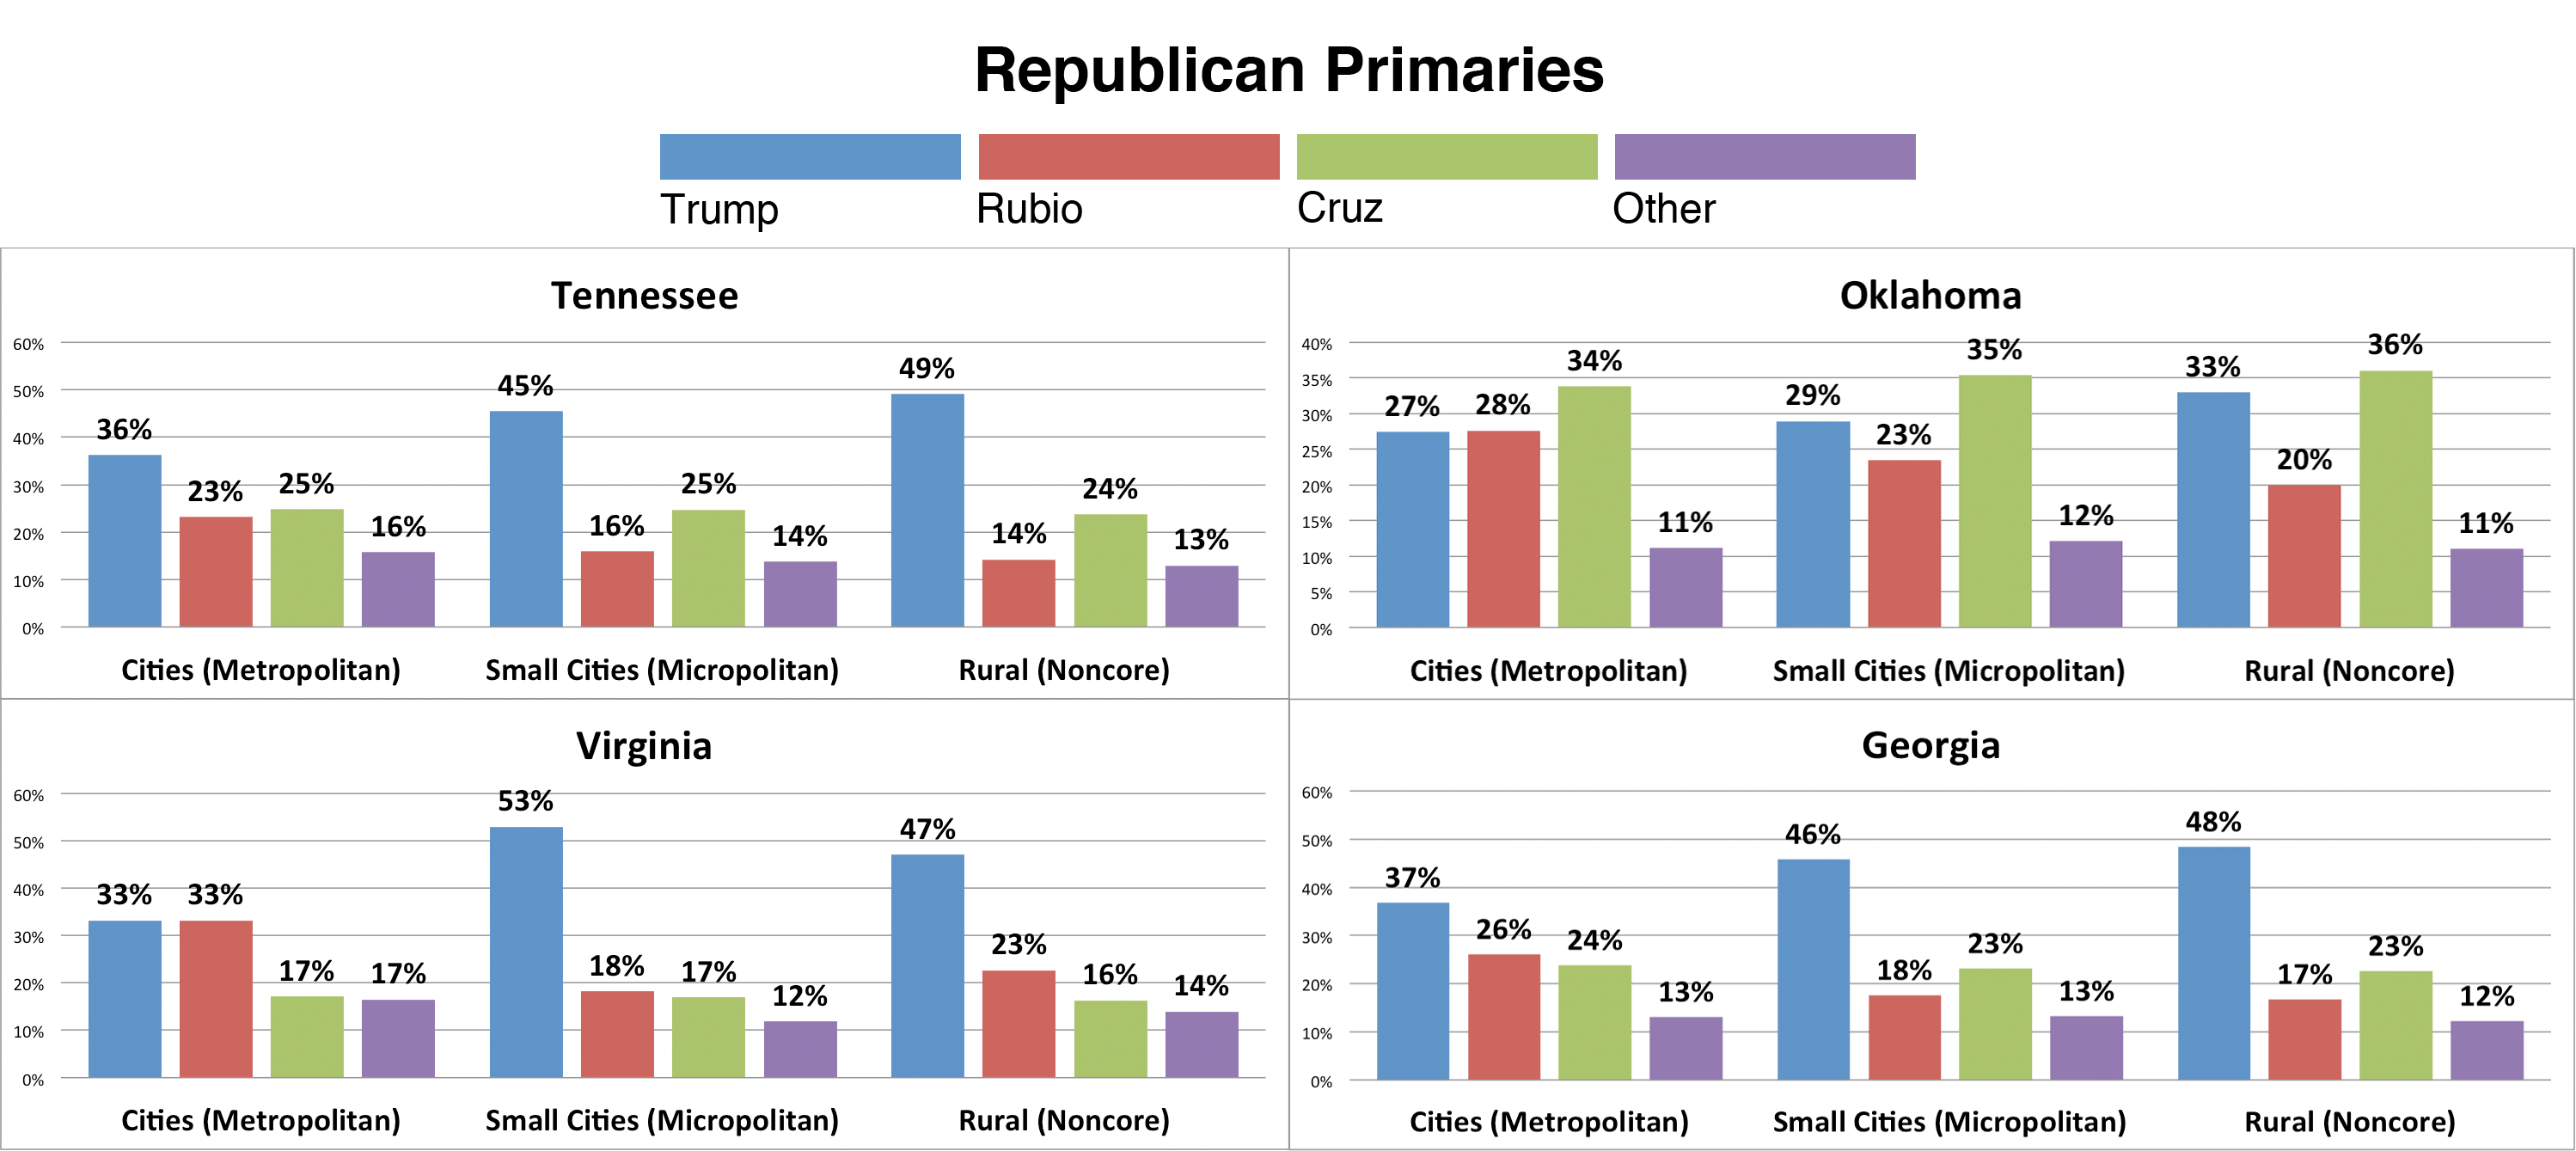 Trump (blue bar) generally got more support from voters in small cities and rural areas than from voters in metro areas. Rubio (red bar) generally saw better performance in cities, with a decline with voters in small cities and rural areas.